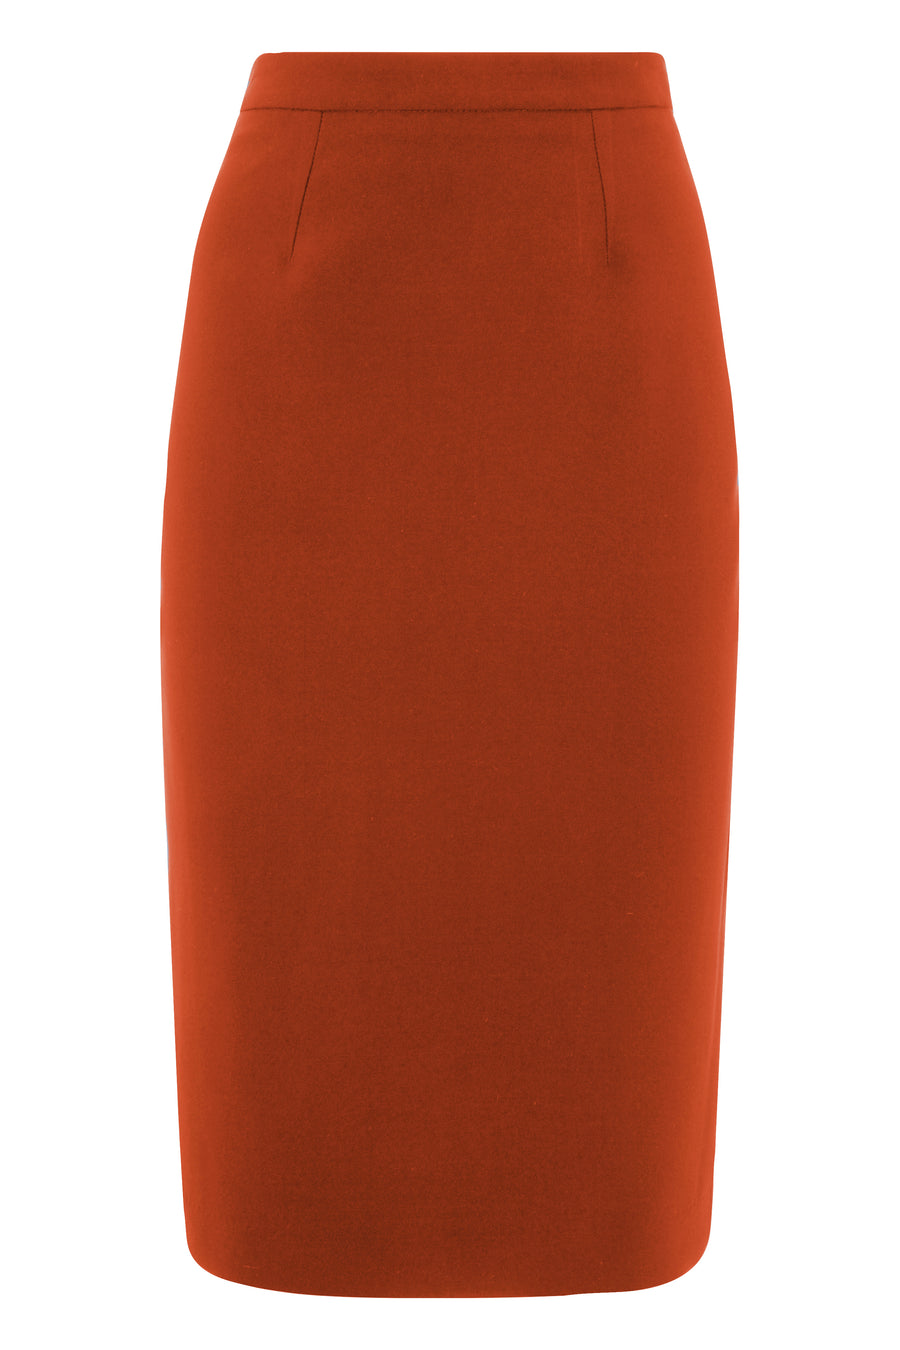 Suzy Terracotta Skirt